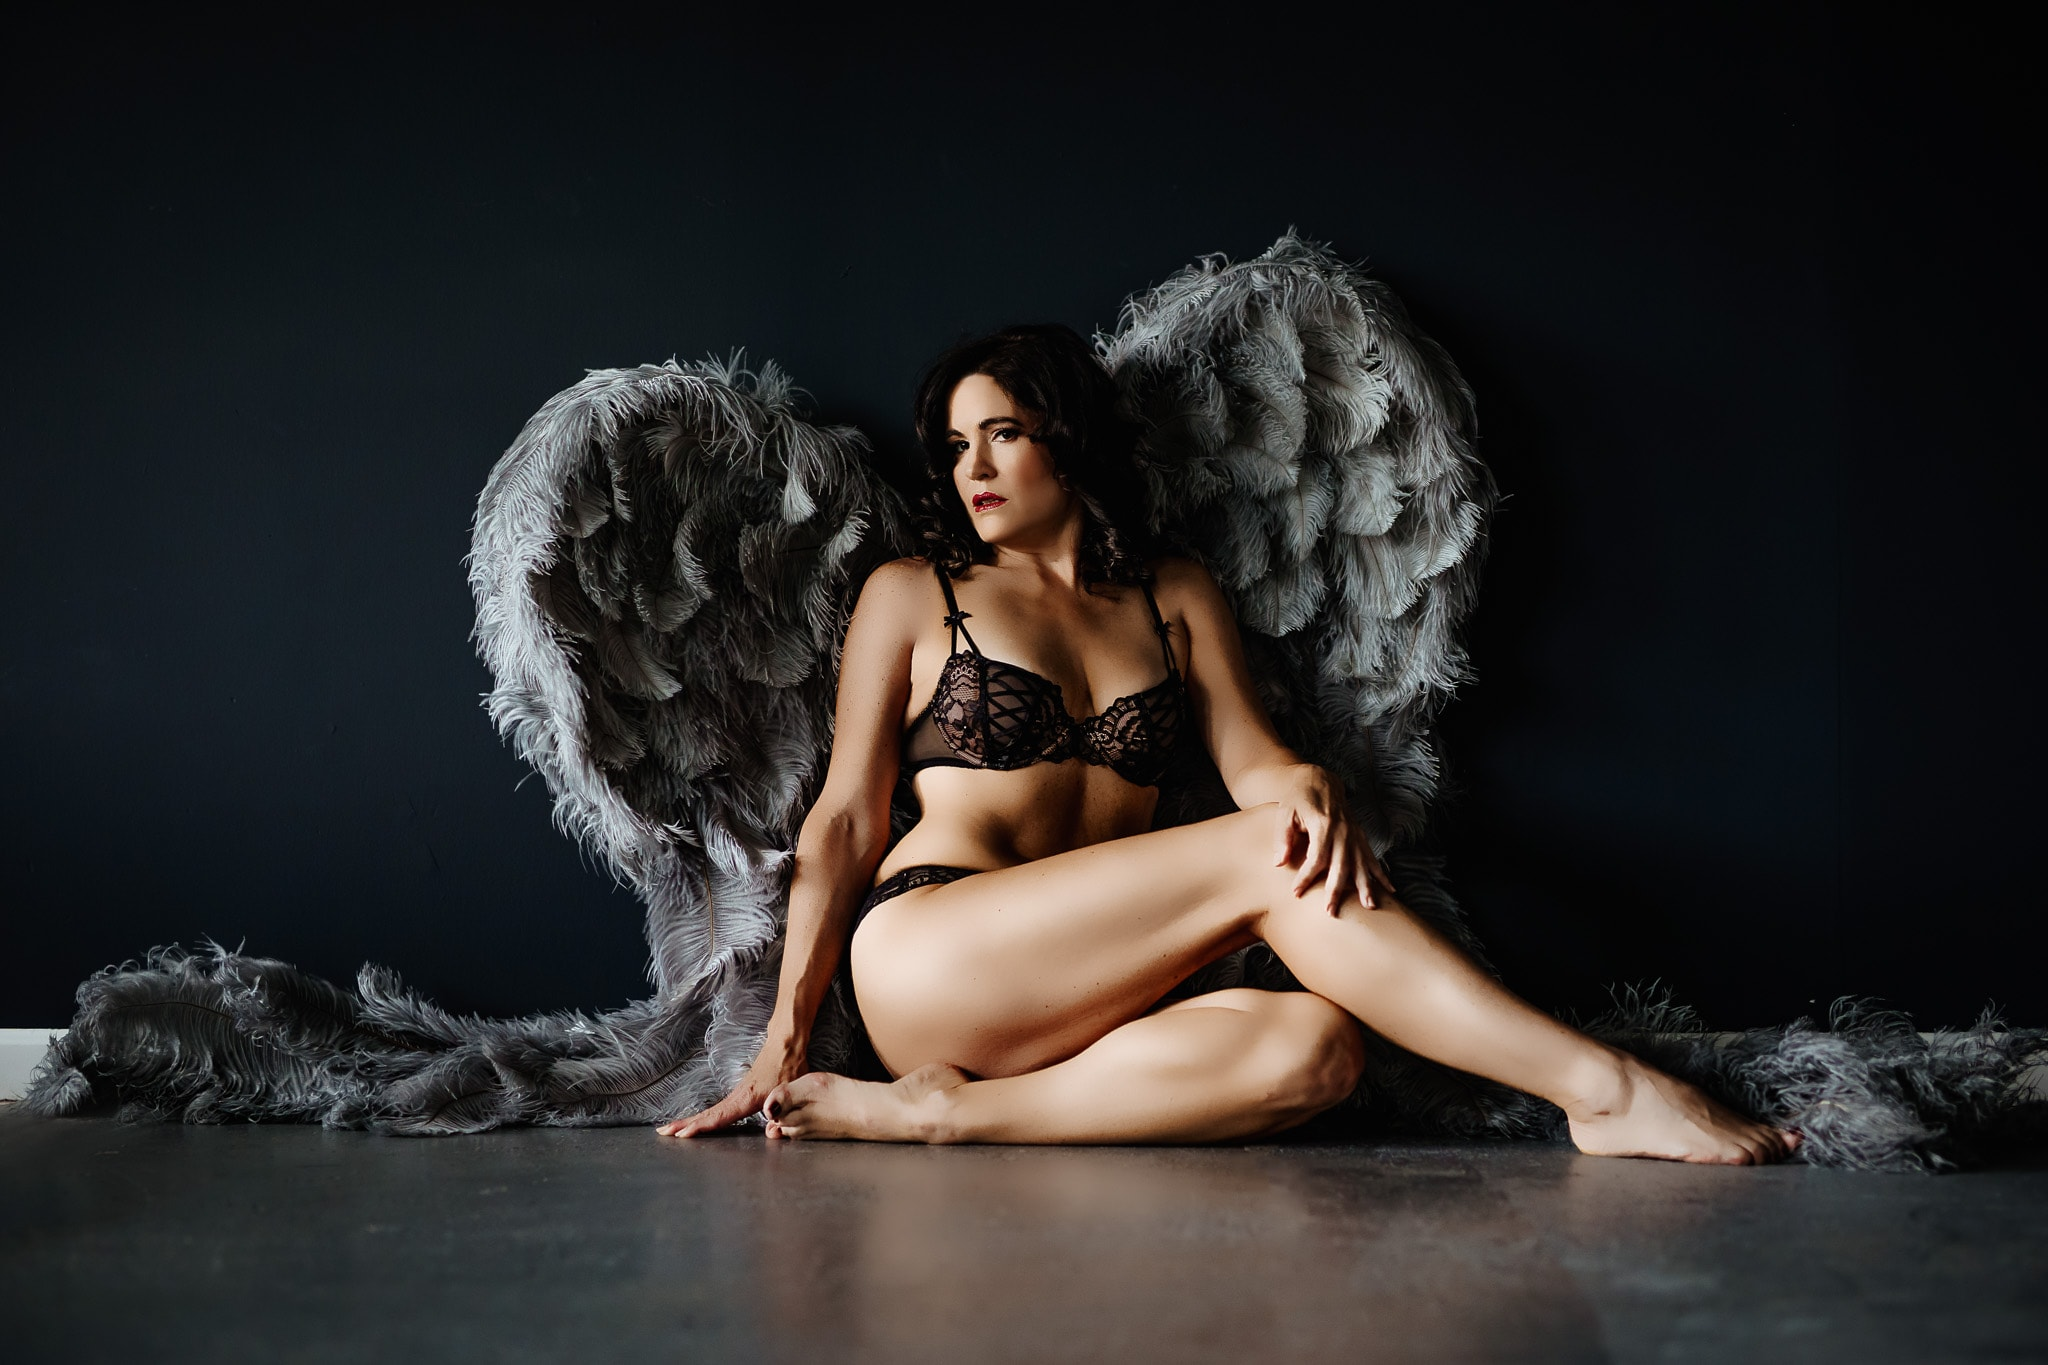 A 50 year old woman wearing angel wings in her boudoir session